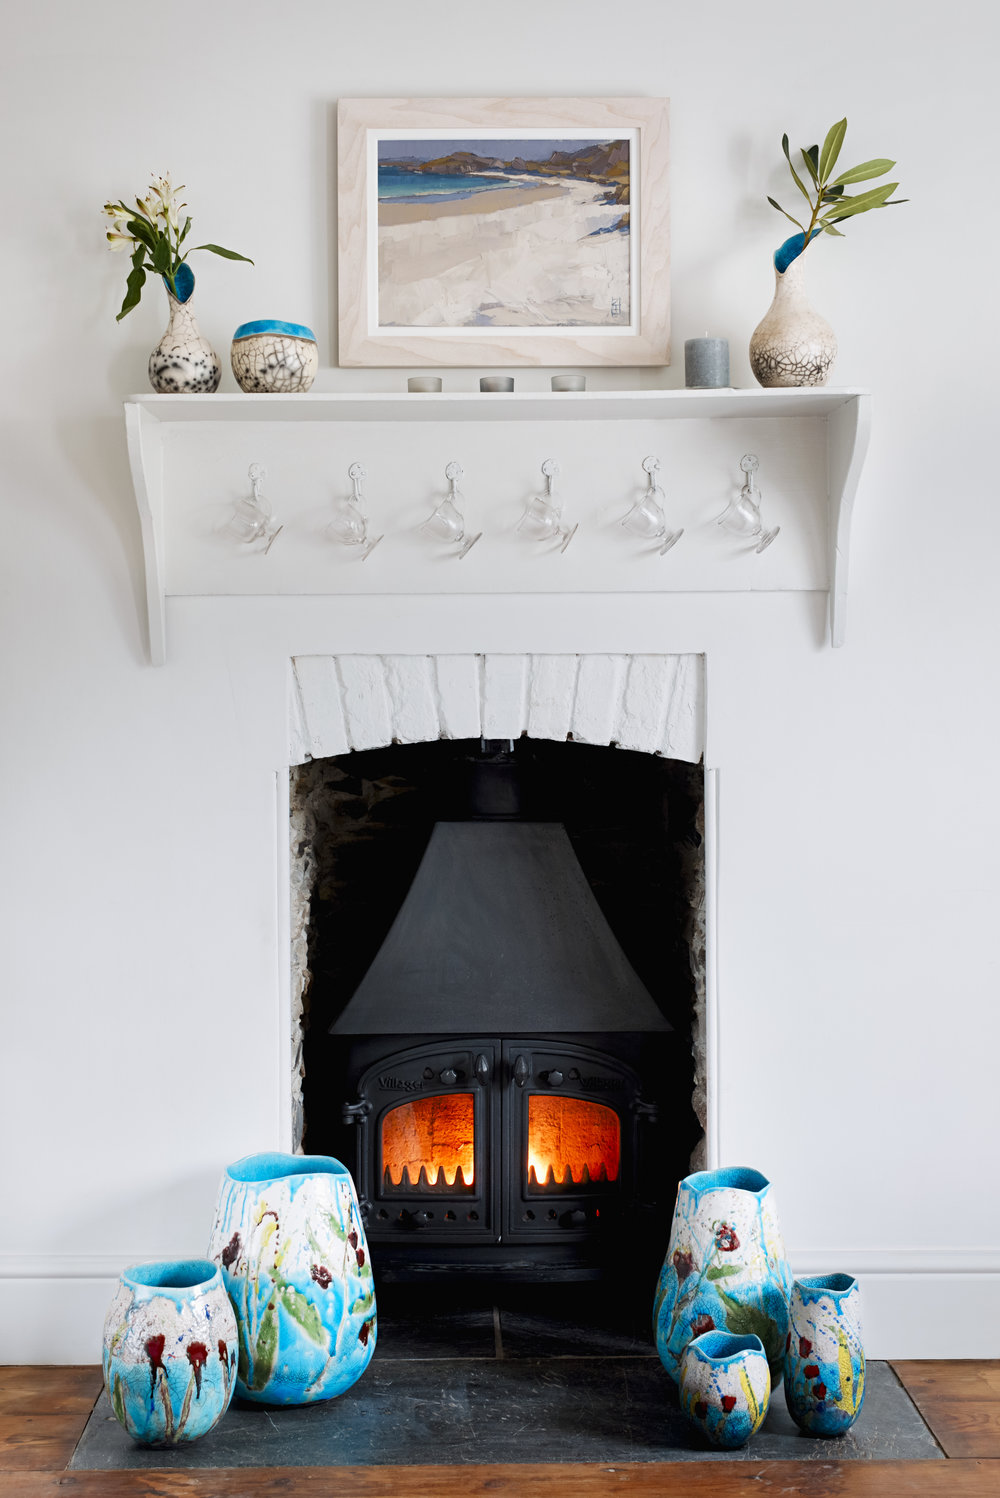 Pots by fireplace_Lucktaylor Ceramics.jpg